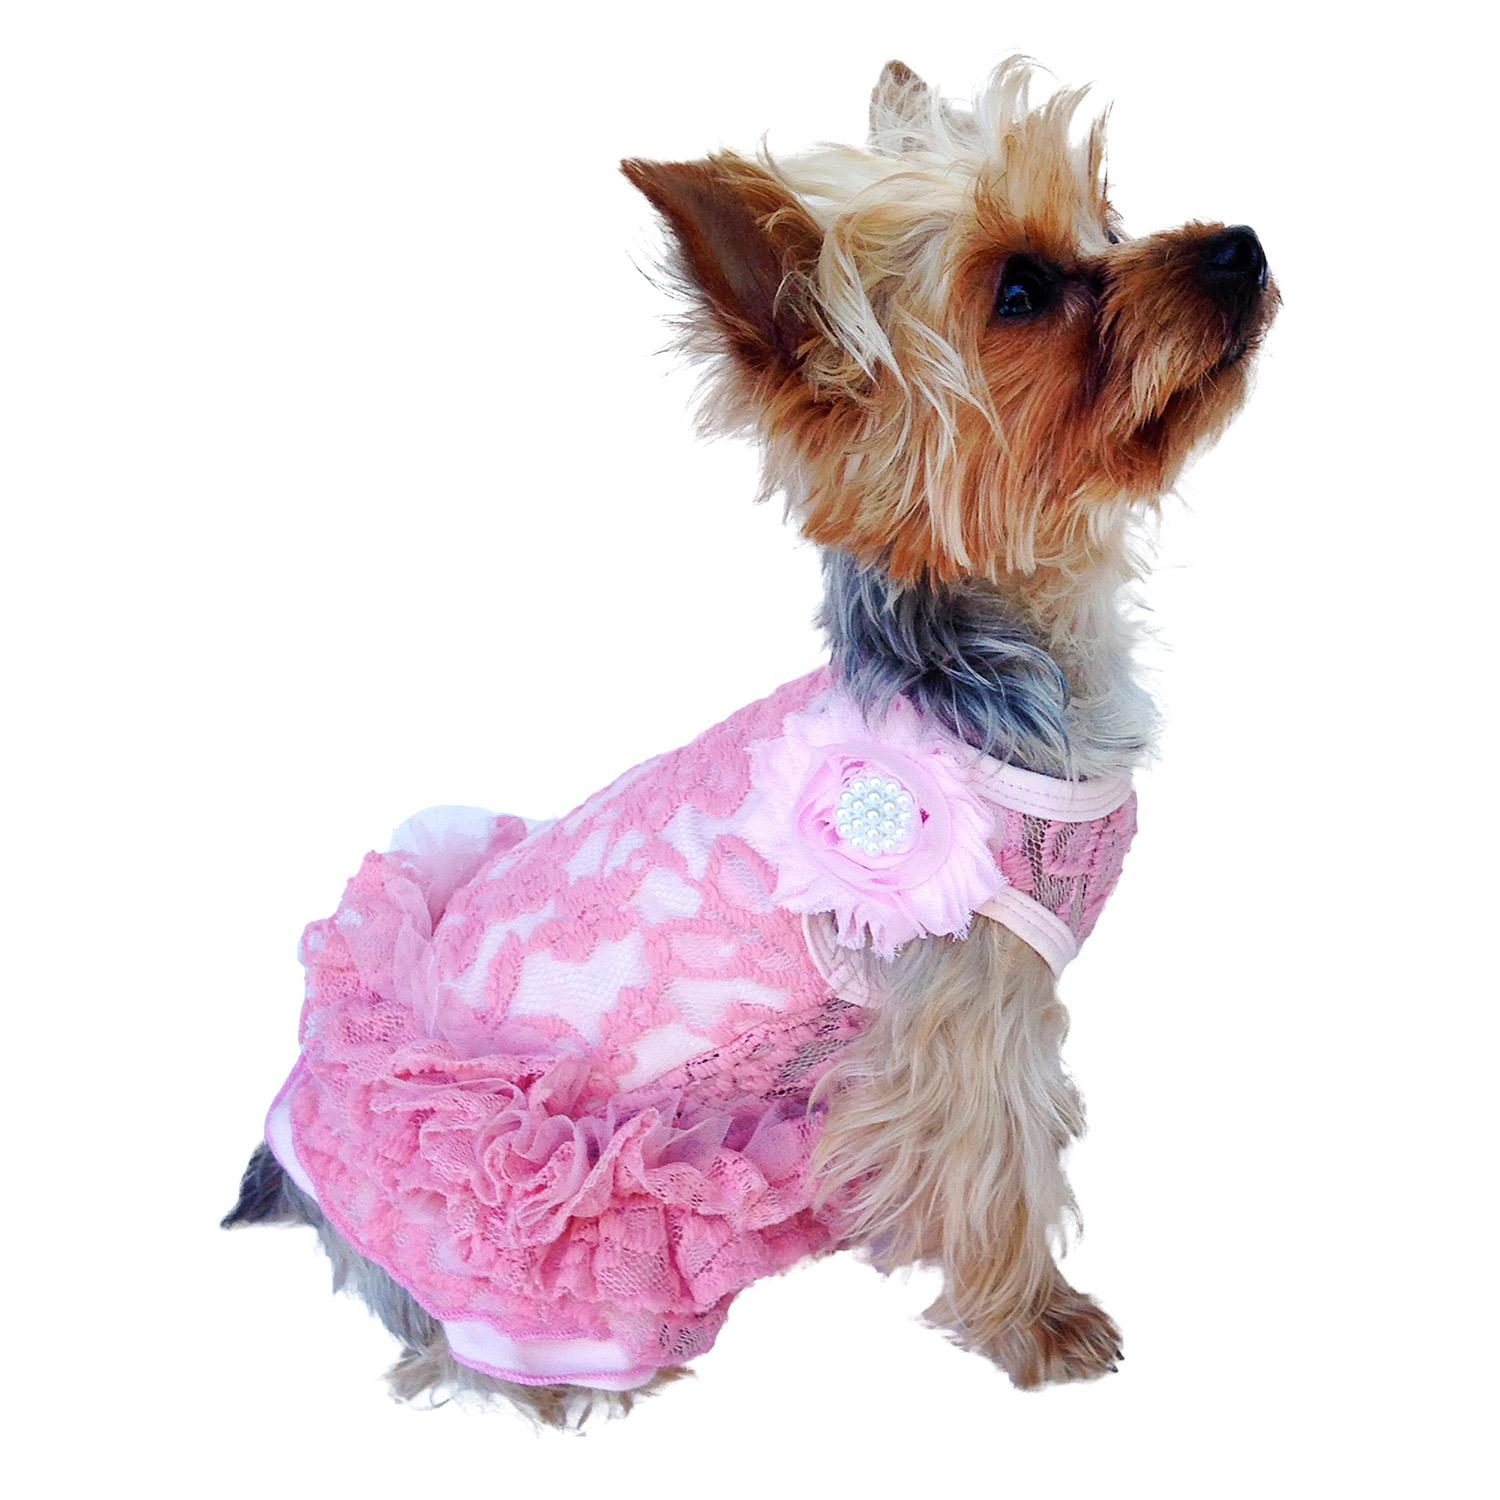 Garden Party Tutu Dog Dress by The Dog Squad - Pink